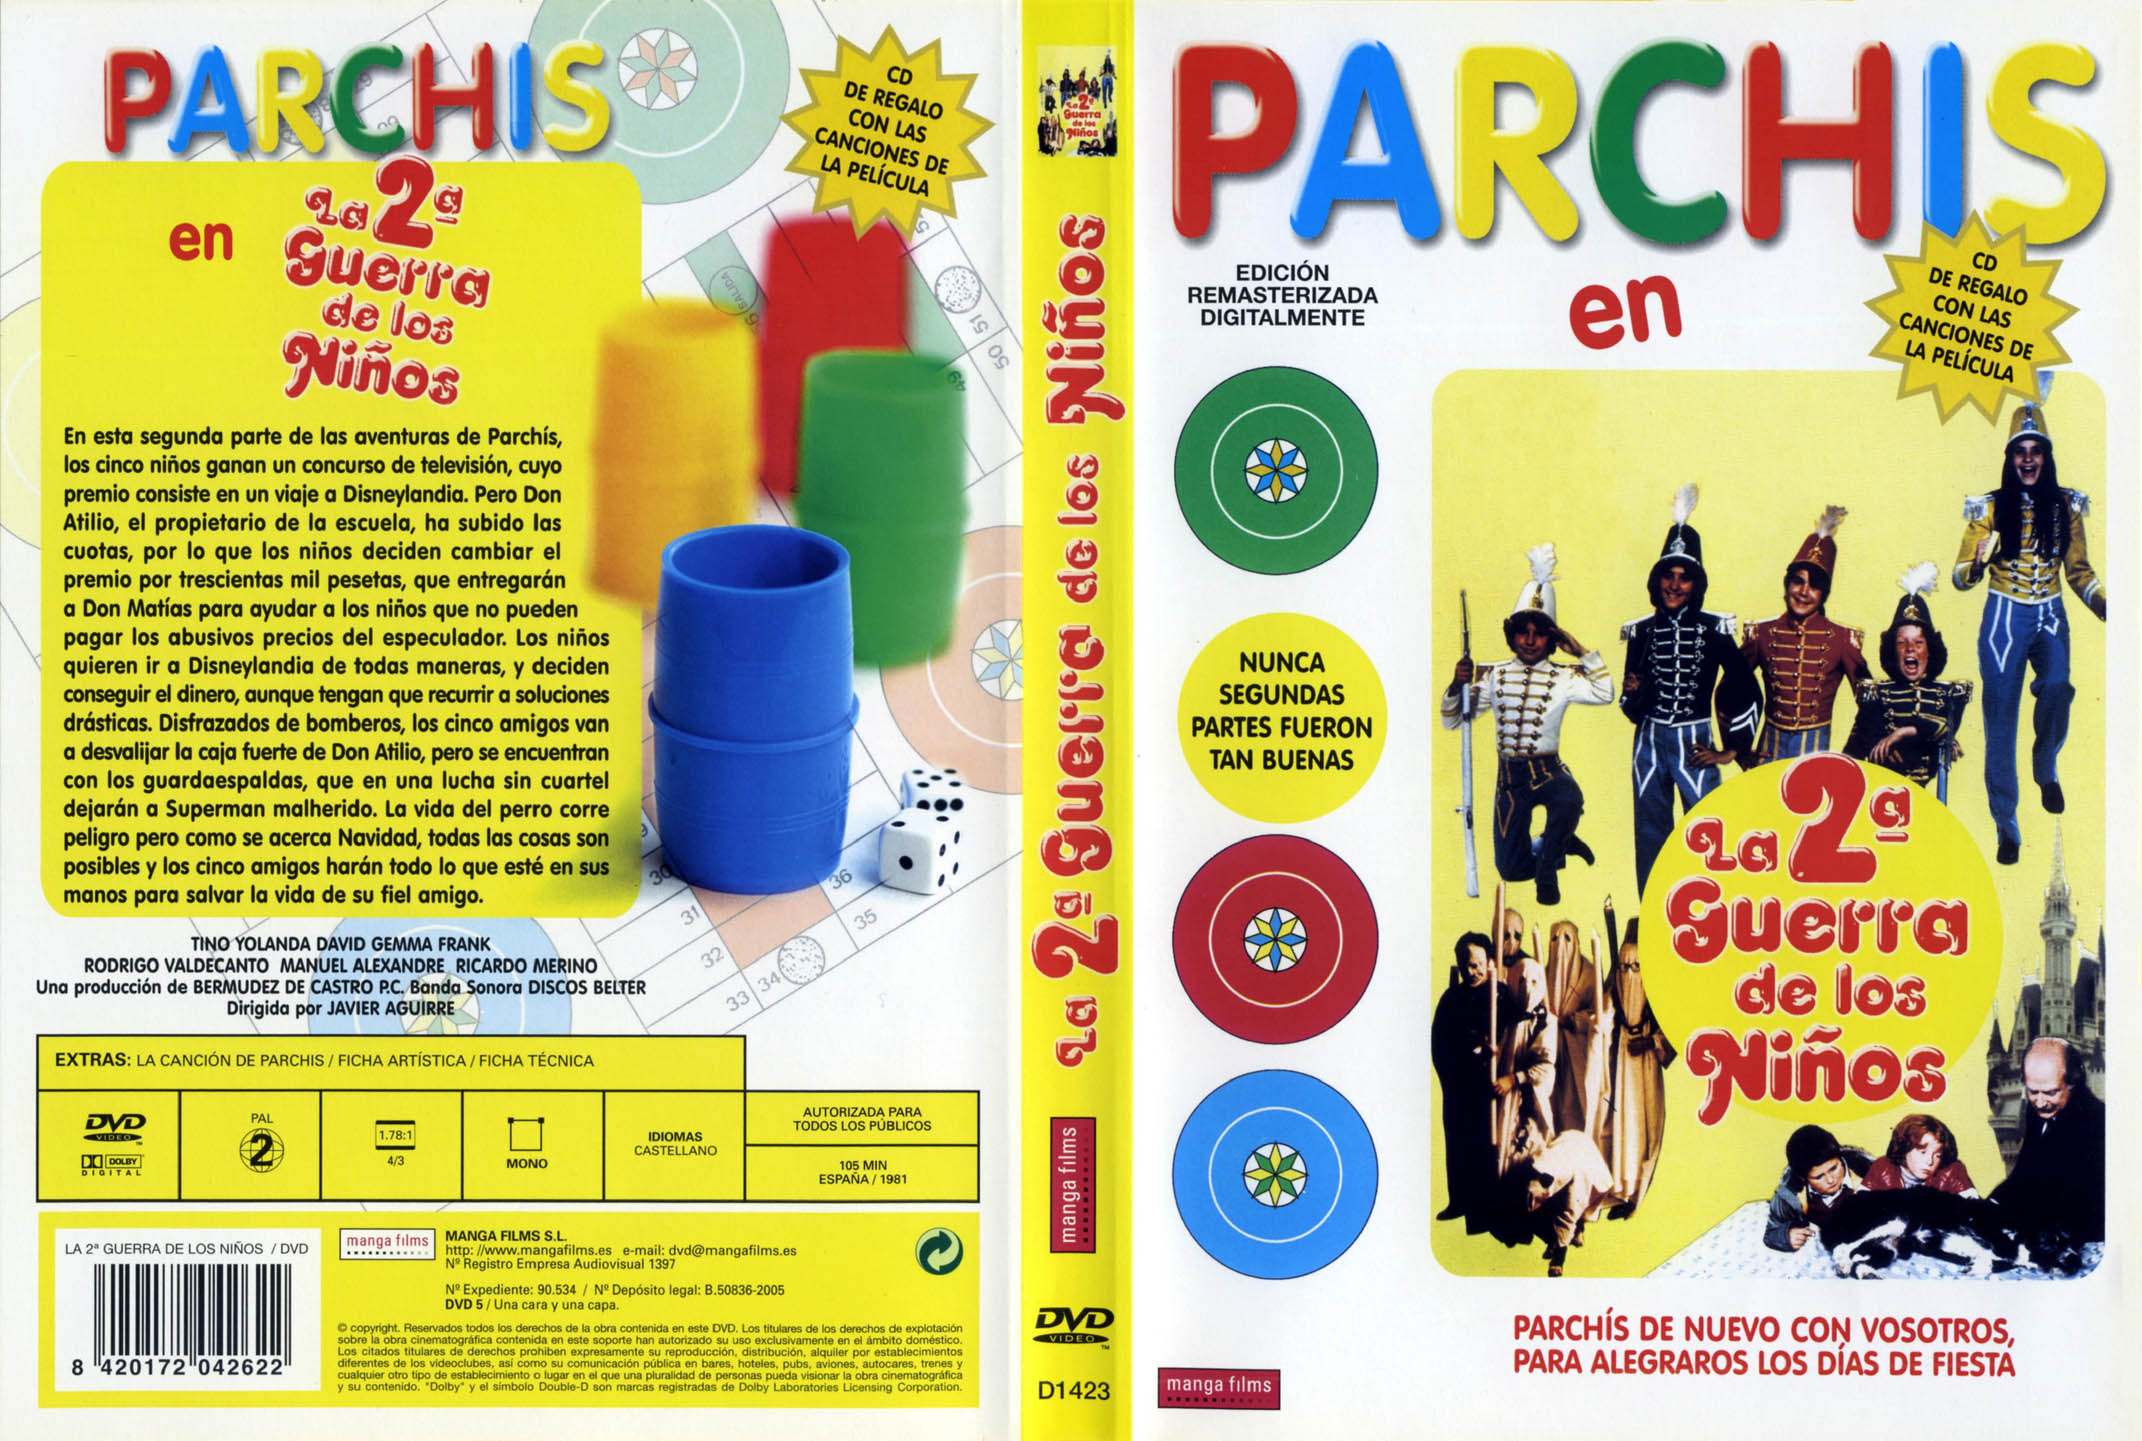 Foto actual de los parchis 85